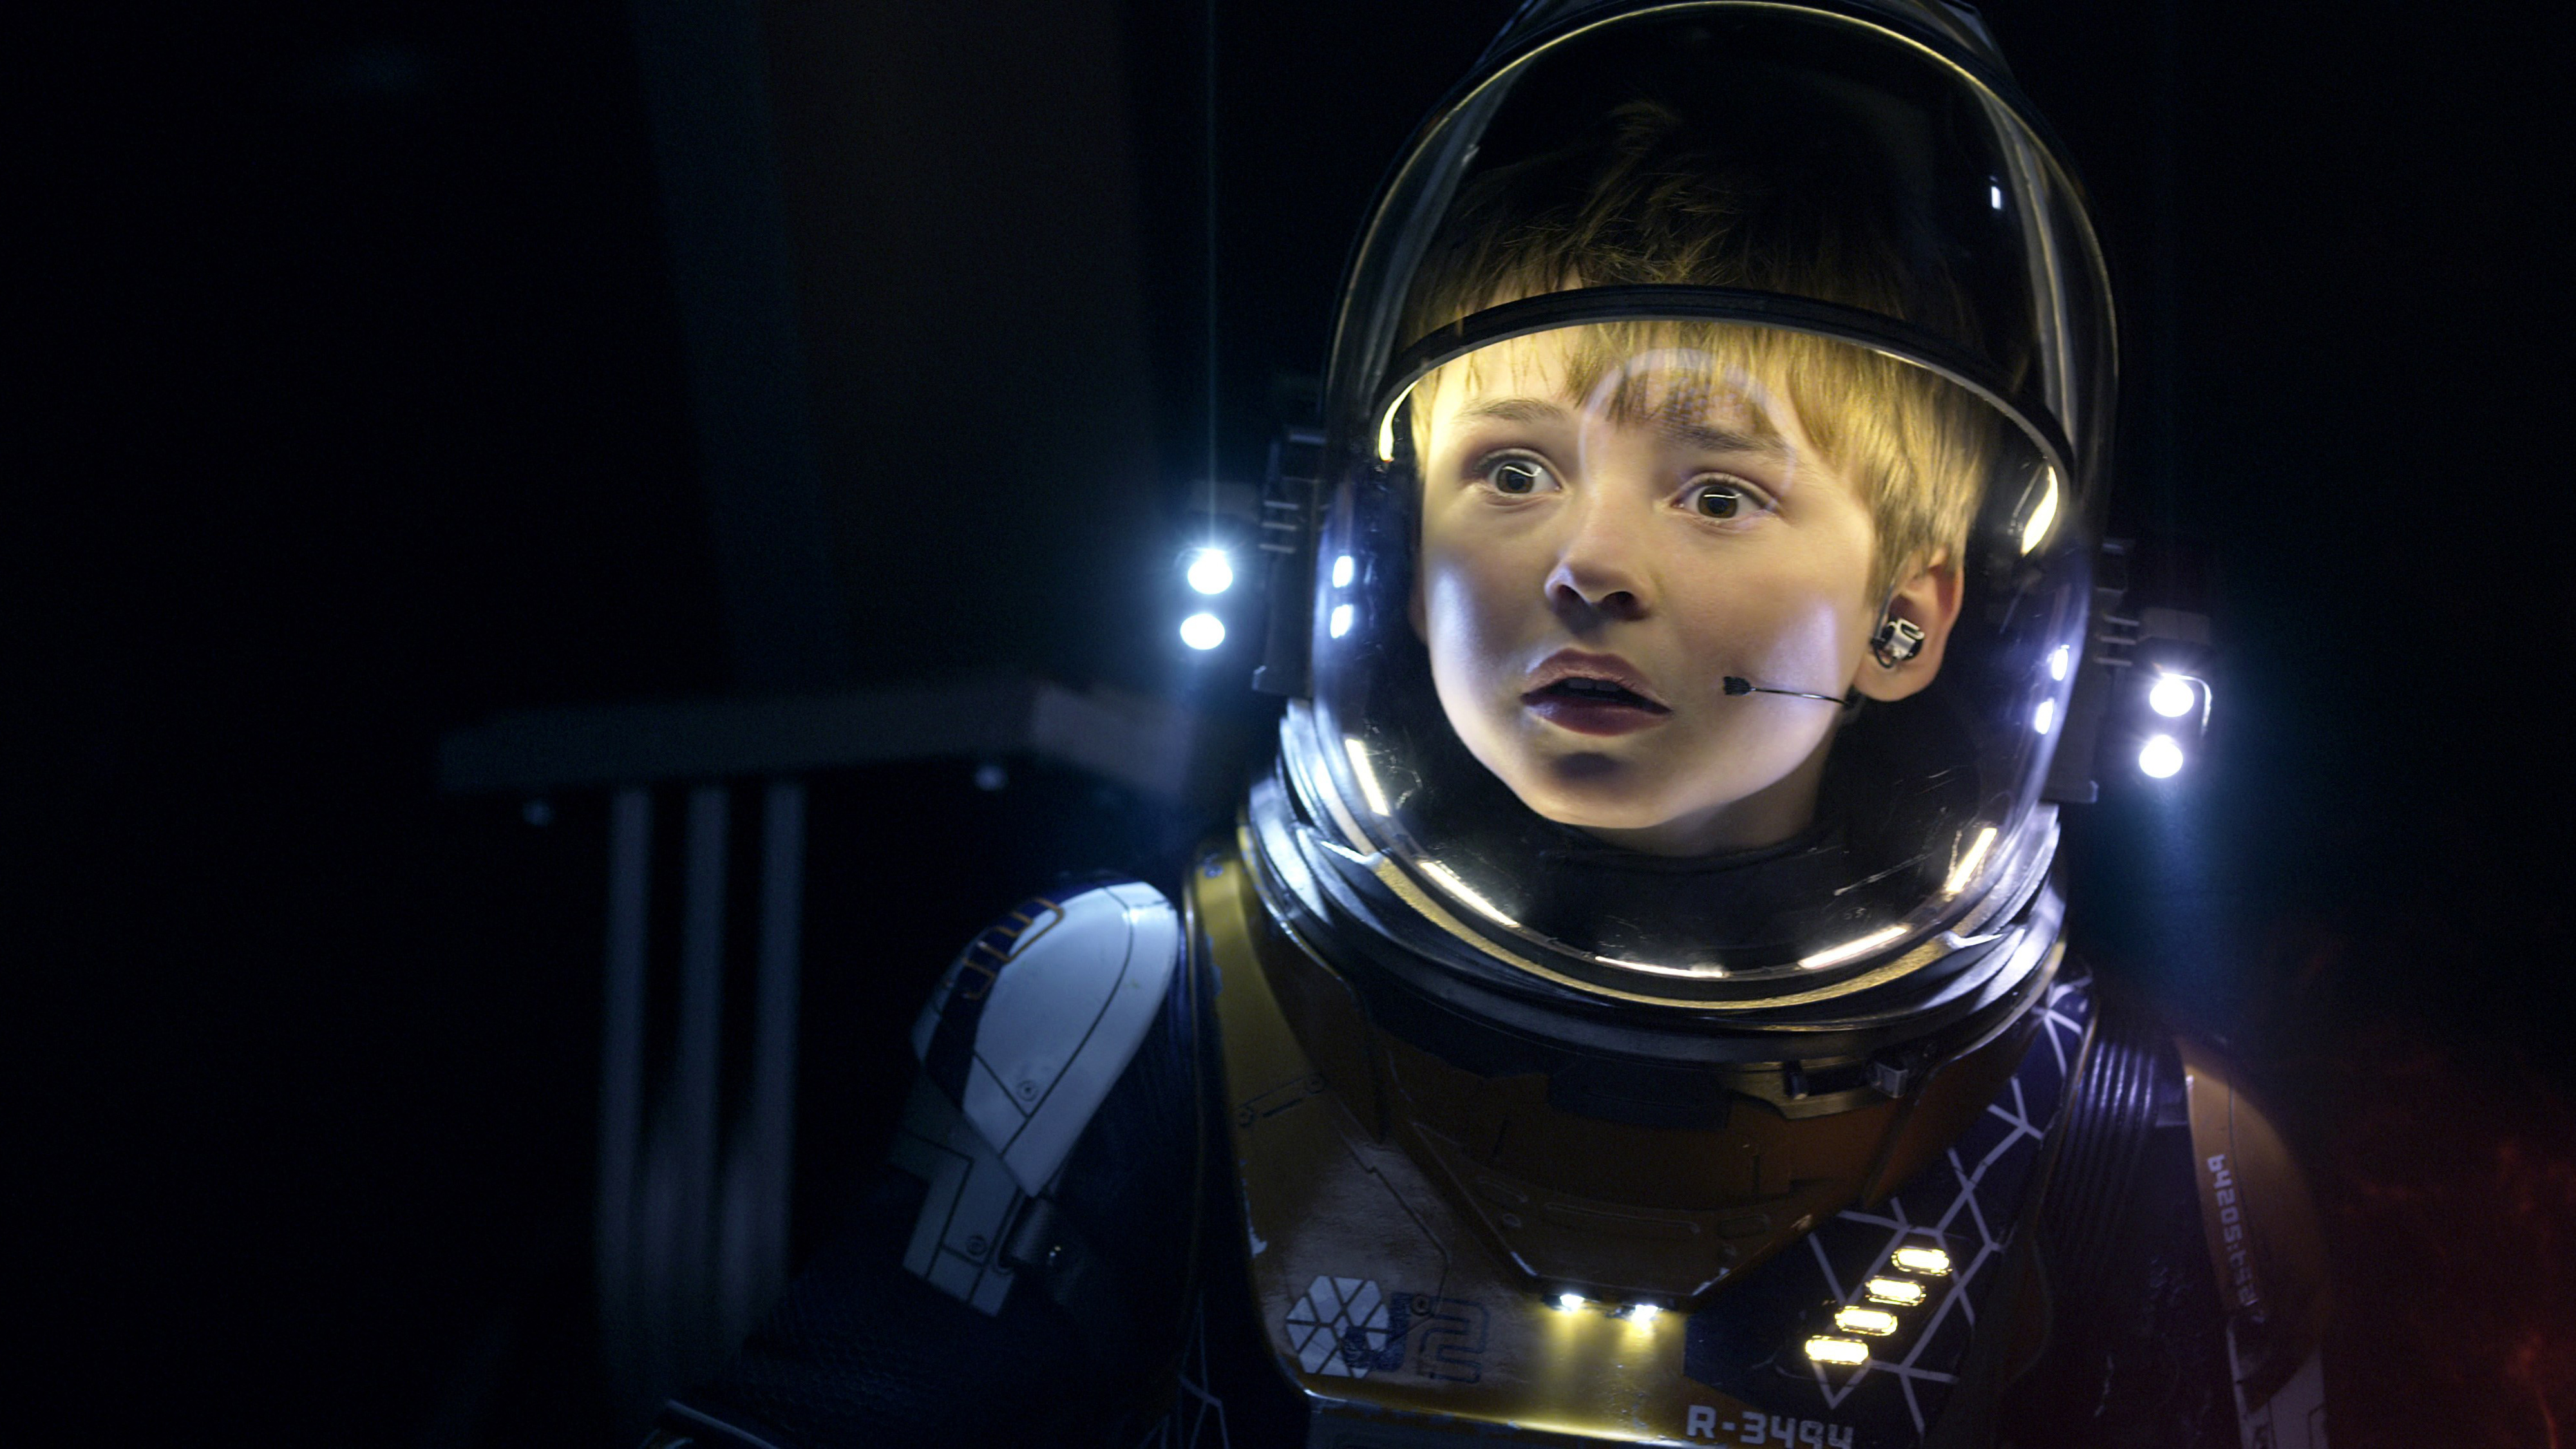 Maxwell Jenkins as Will in Lost in Space 4K8474214919 - Maxwell Jenkins as Will in Lost in Space 4K - Will, Space, Maxwell, Lost, Judy, Jenkins